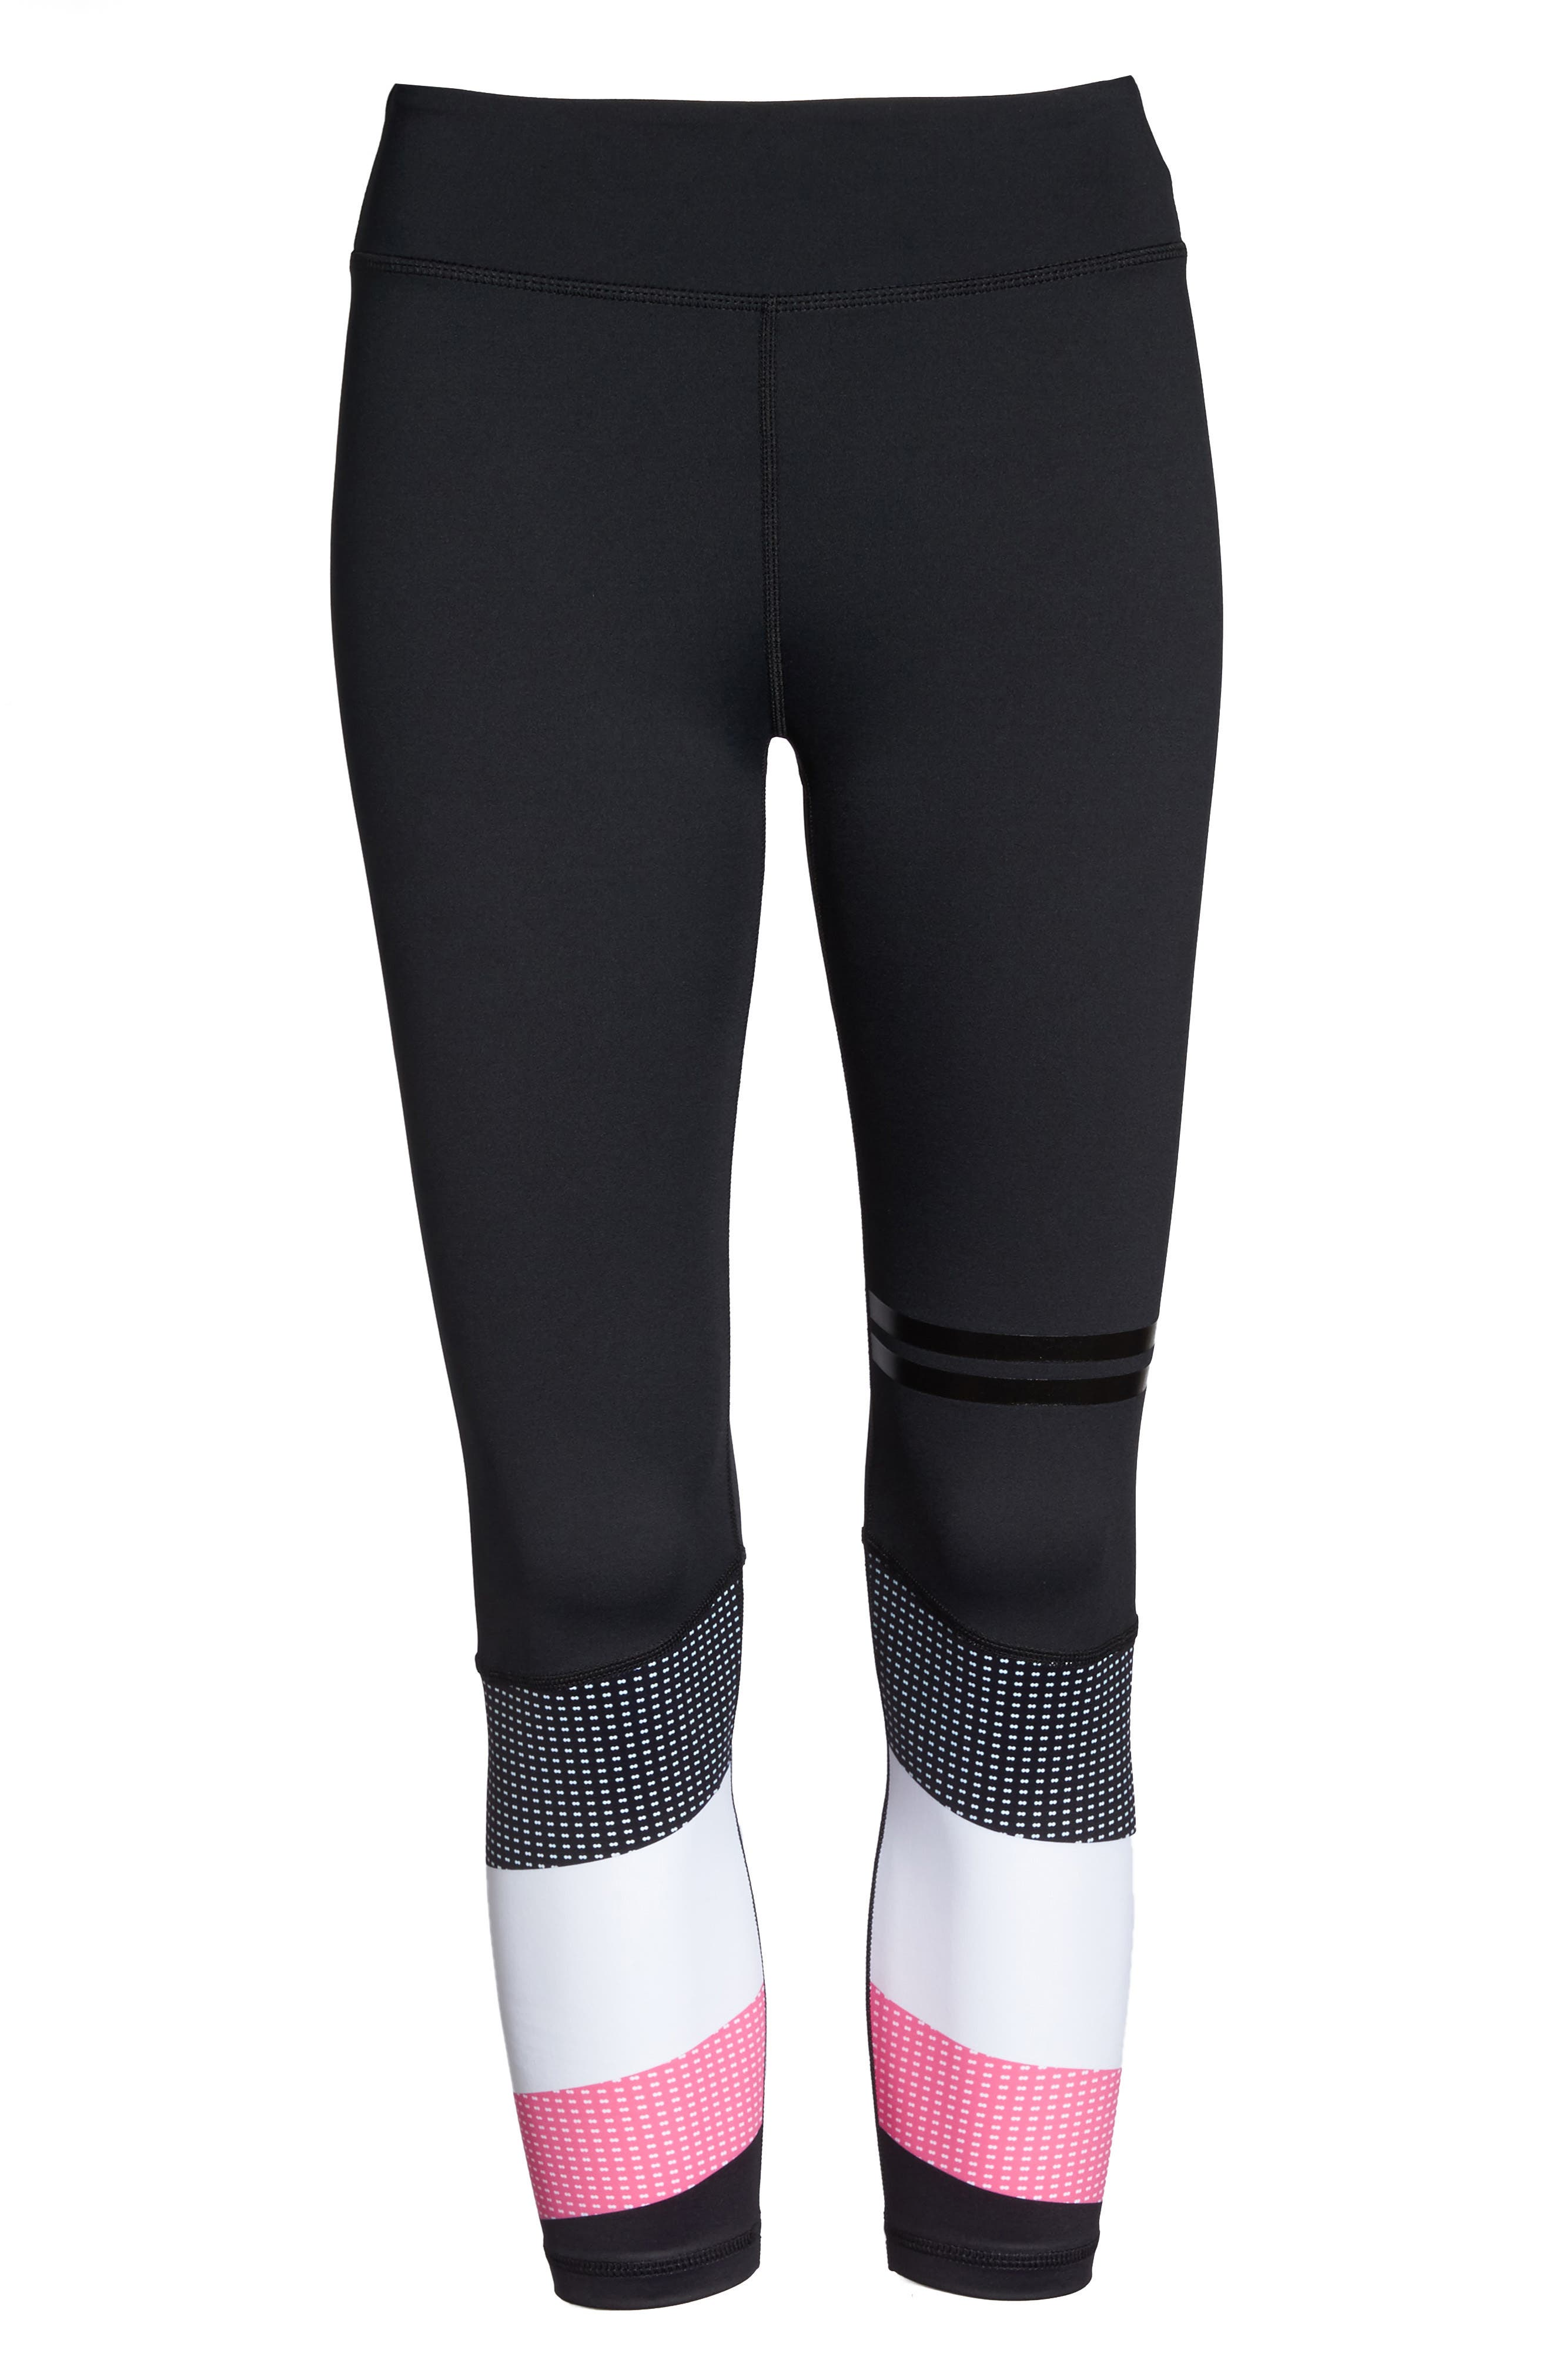 Skyler Midi Leggings,                             Alternate thumbnail 6, color,                             001